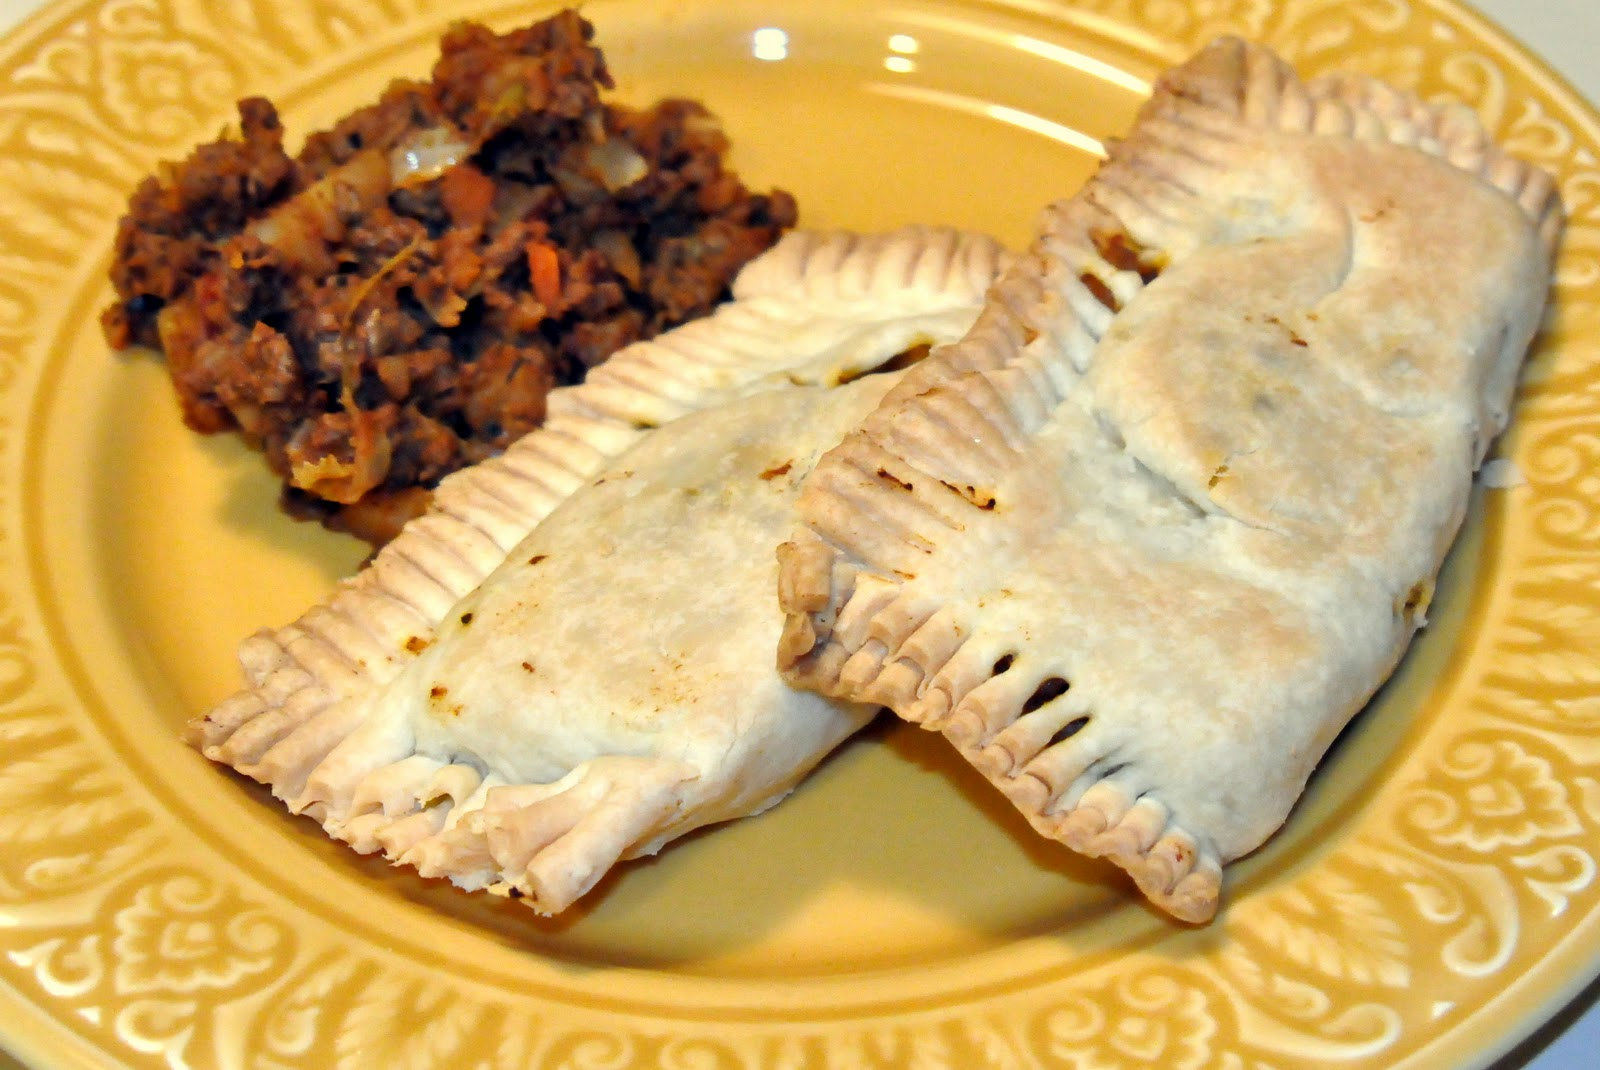 ... guinness hand pies bourbon peach hand pies apple butter hand pies